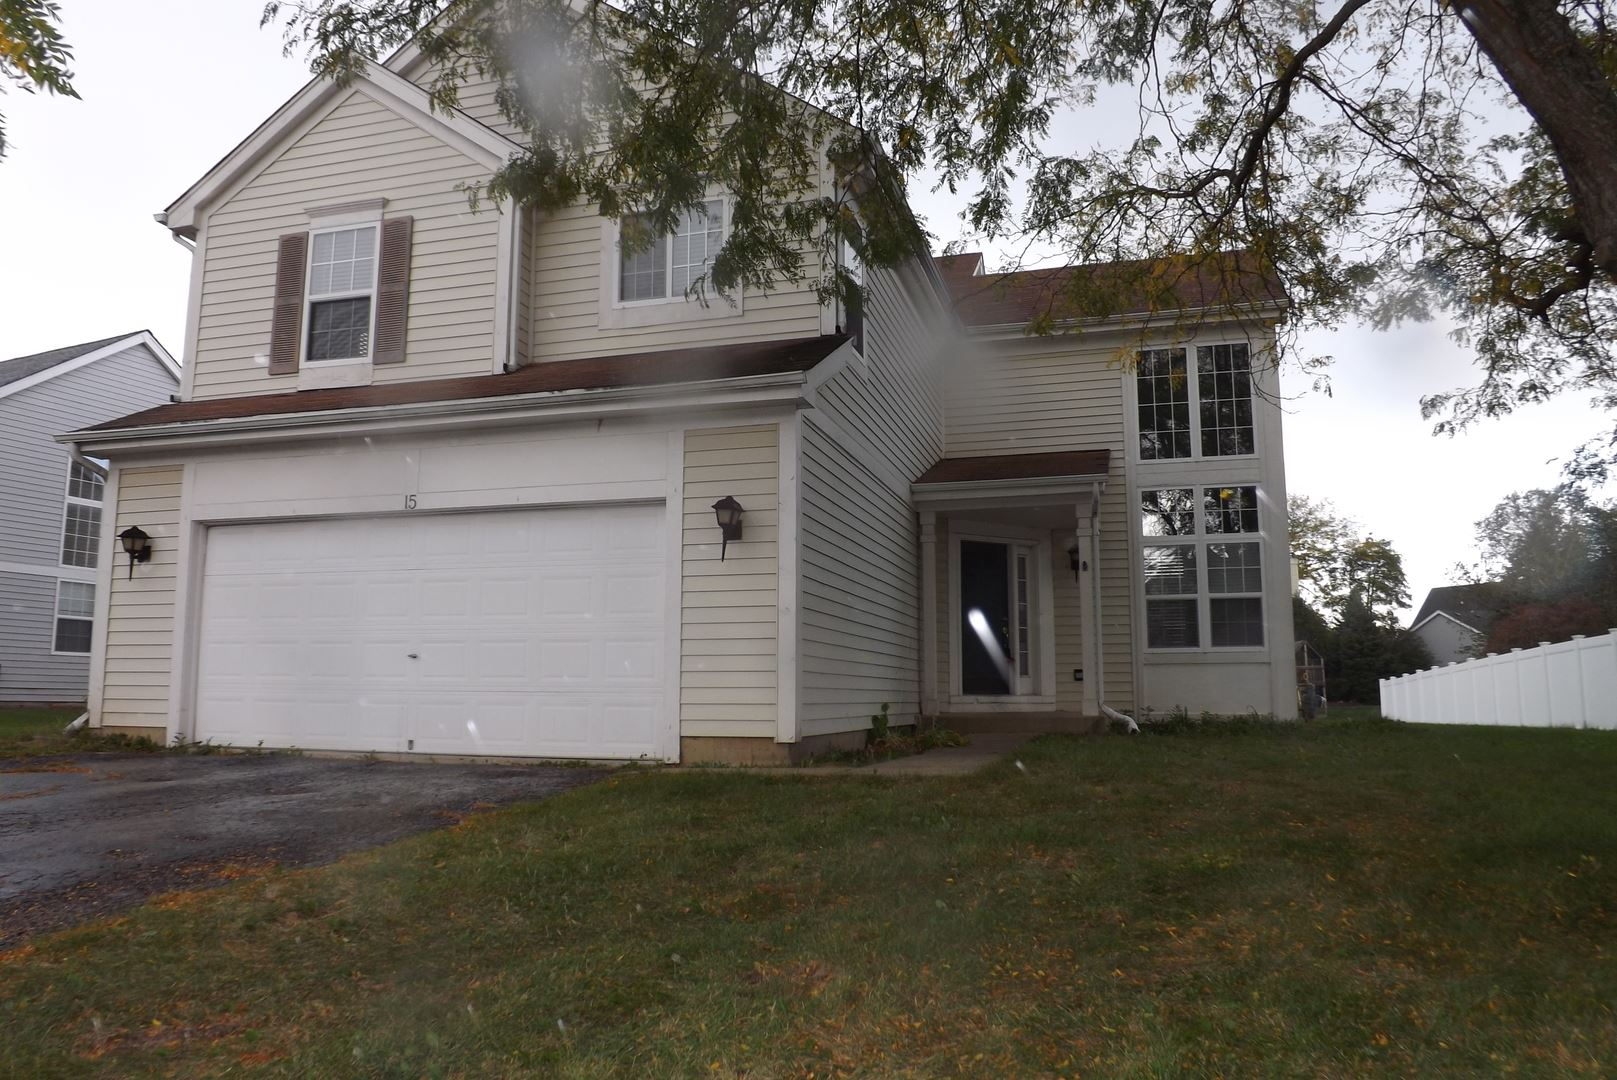 Photo of 15 Penny Court, Bolingbrook, IL 60440 (MLS # 10895454)